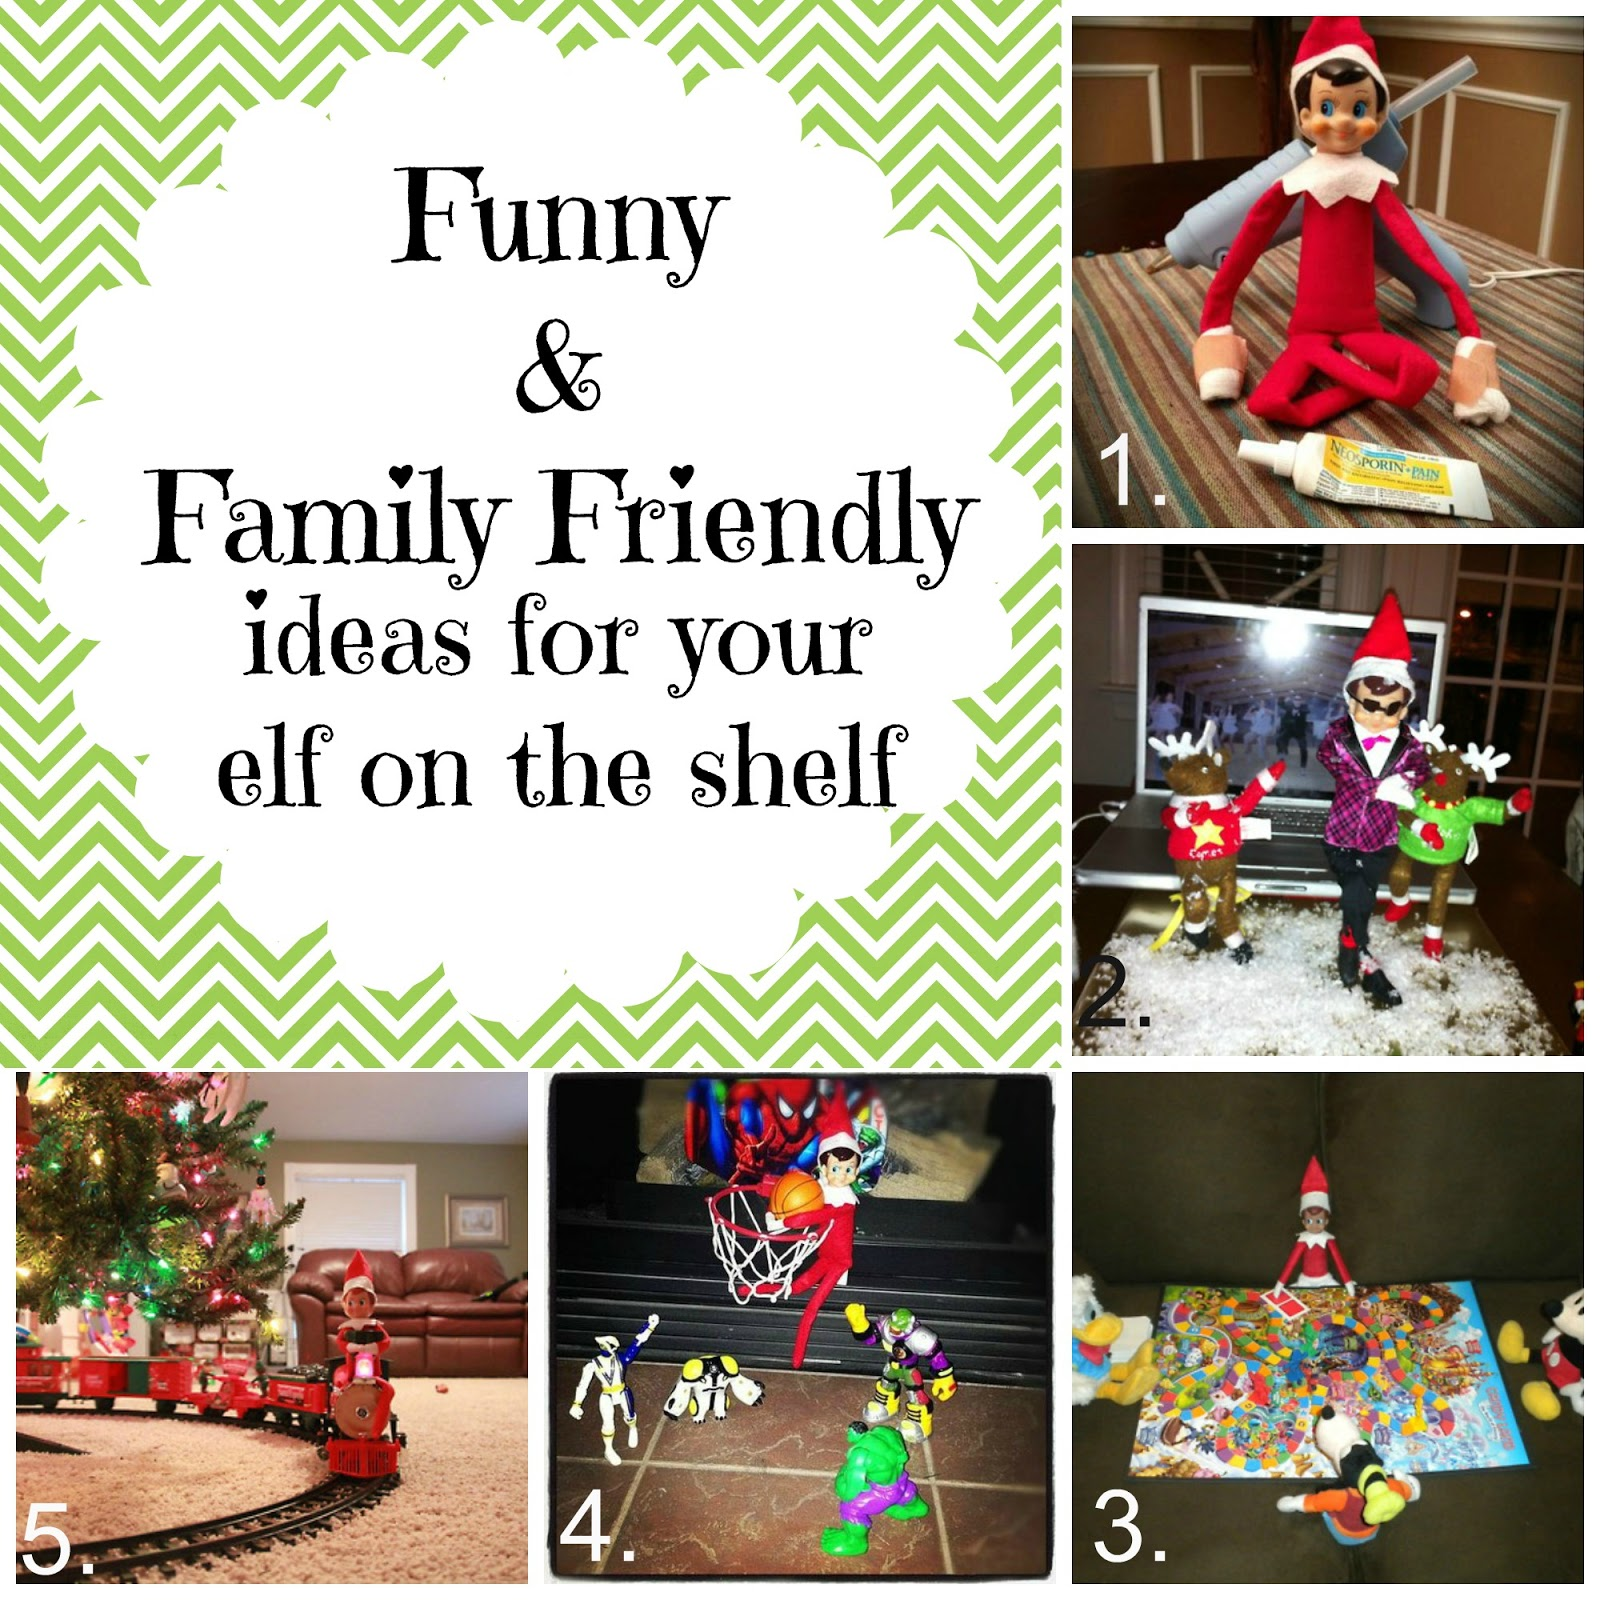 Christmas In July Ideas For A Party Part - 47: ... Elf On The Shelf Ideas. I Am Sure I Will Be Checking This Site Out When  December Rolls Around Again. Make Sure You Bookmark It And Check It Out For  ...